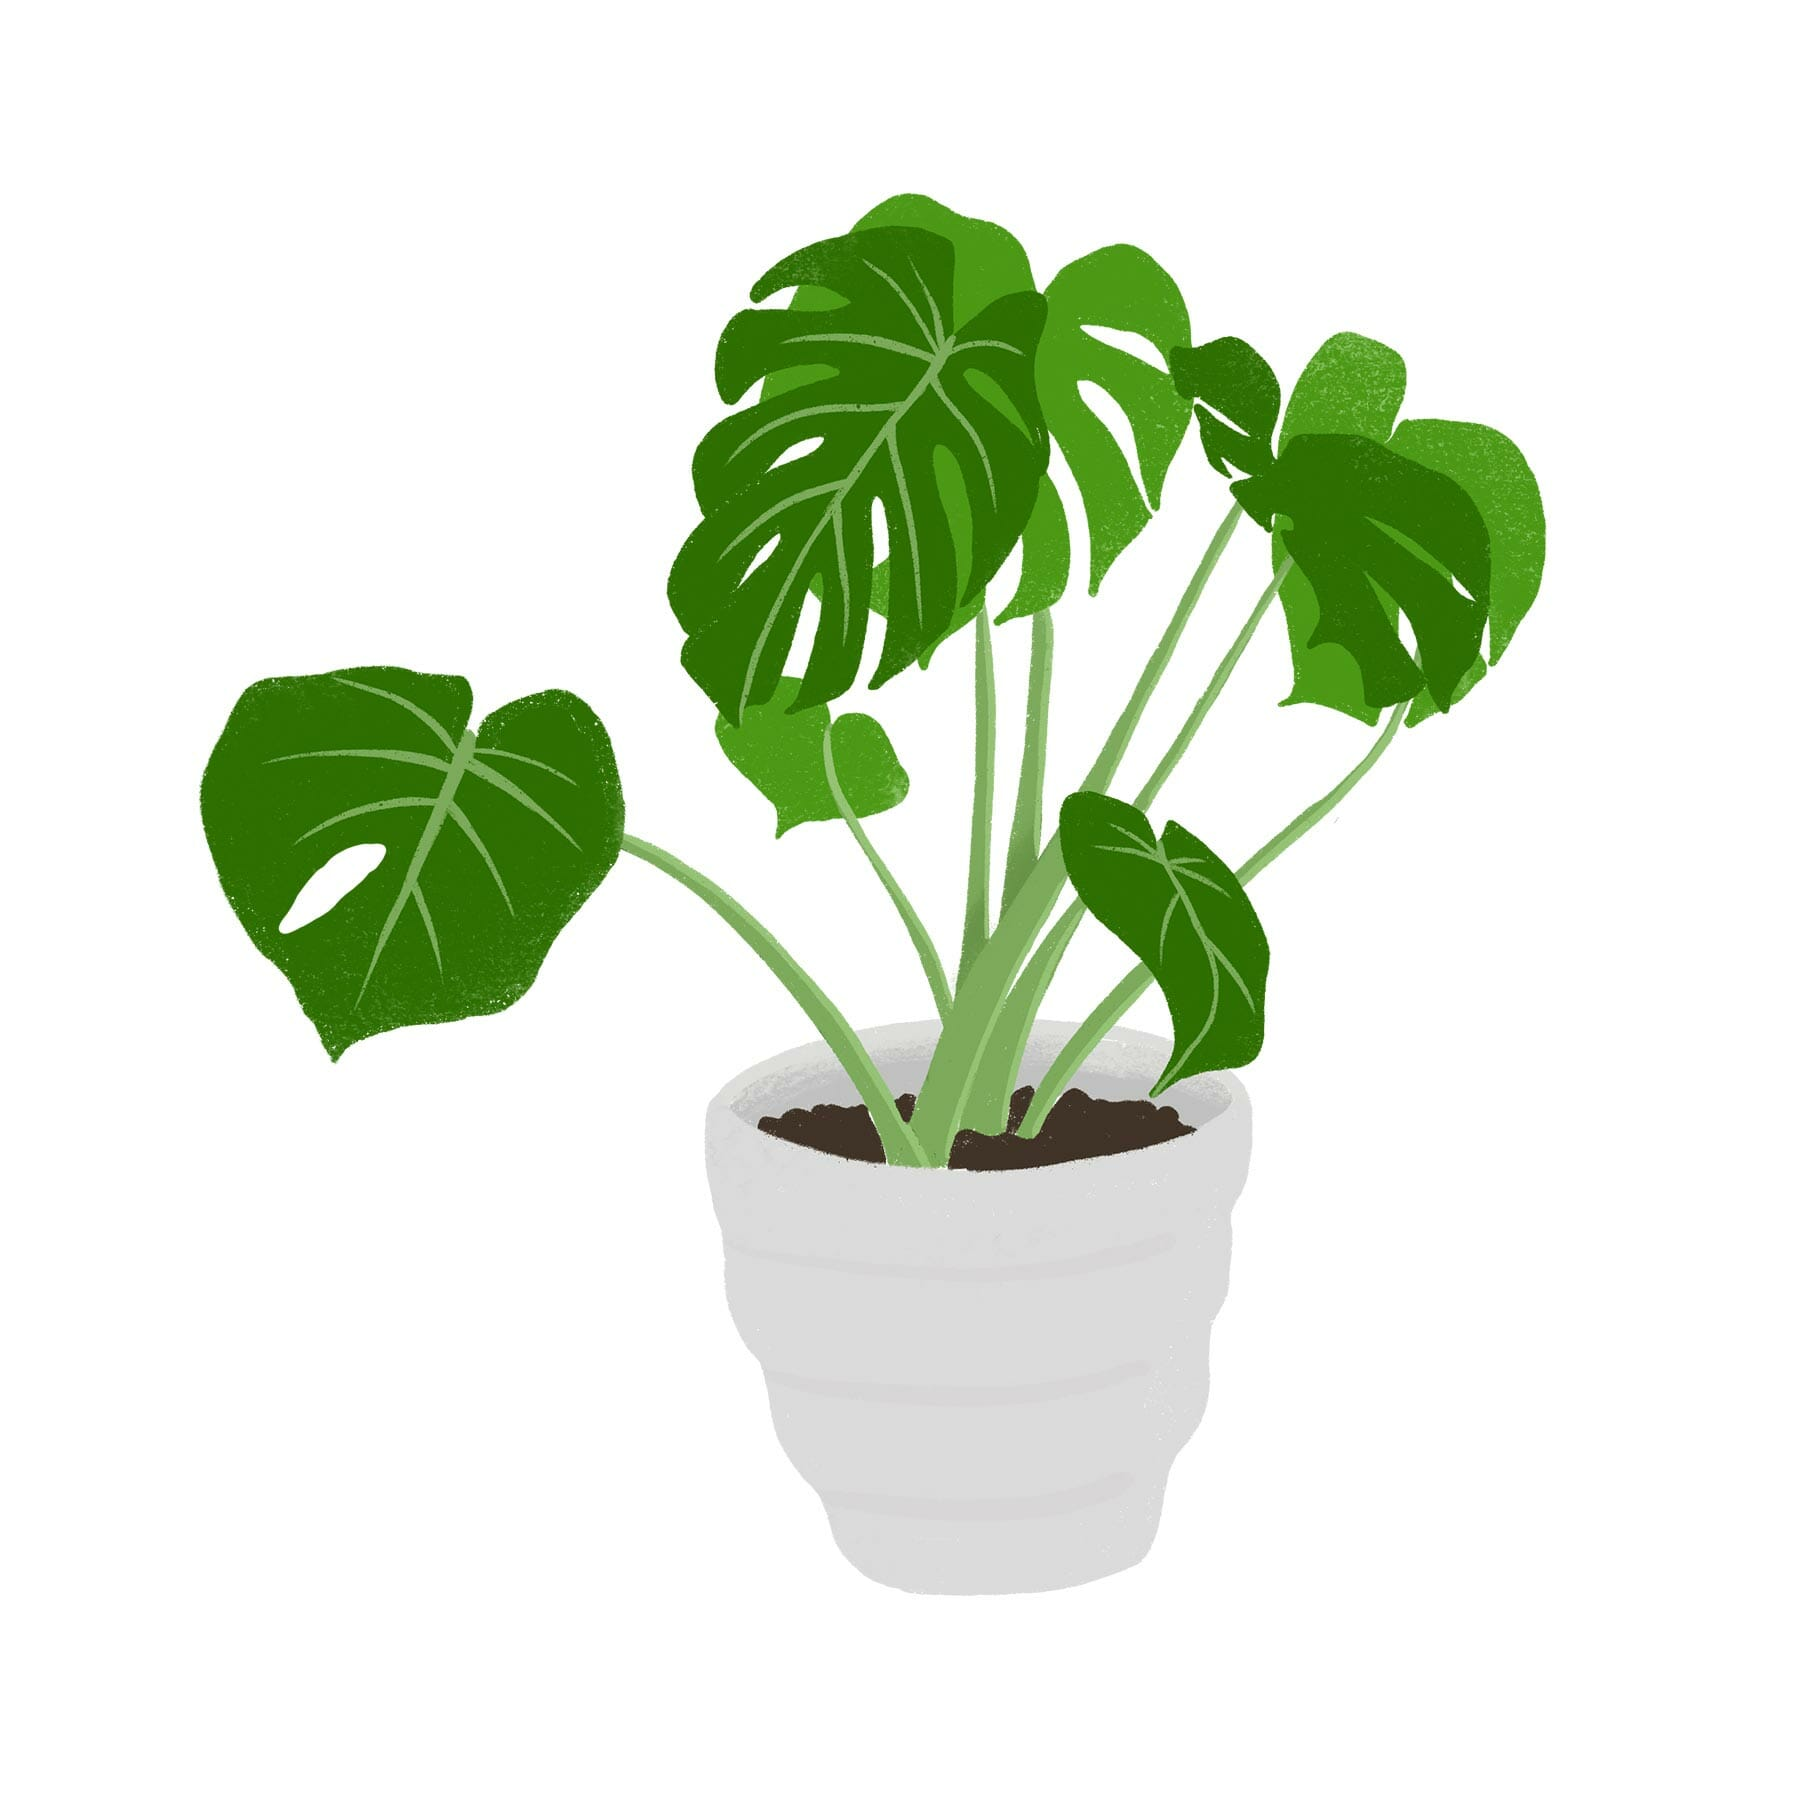 An illustration of a monstera plant.